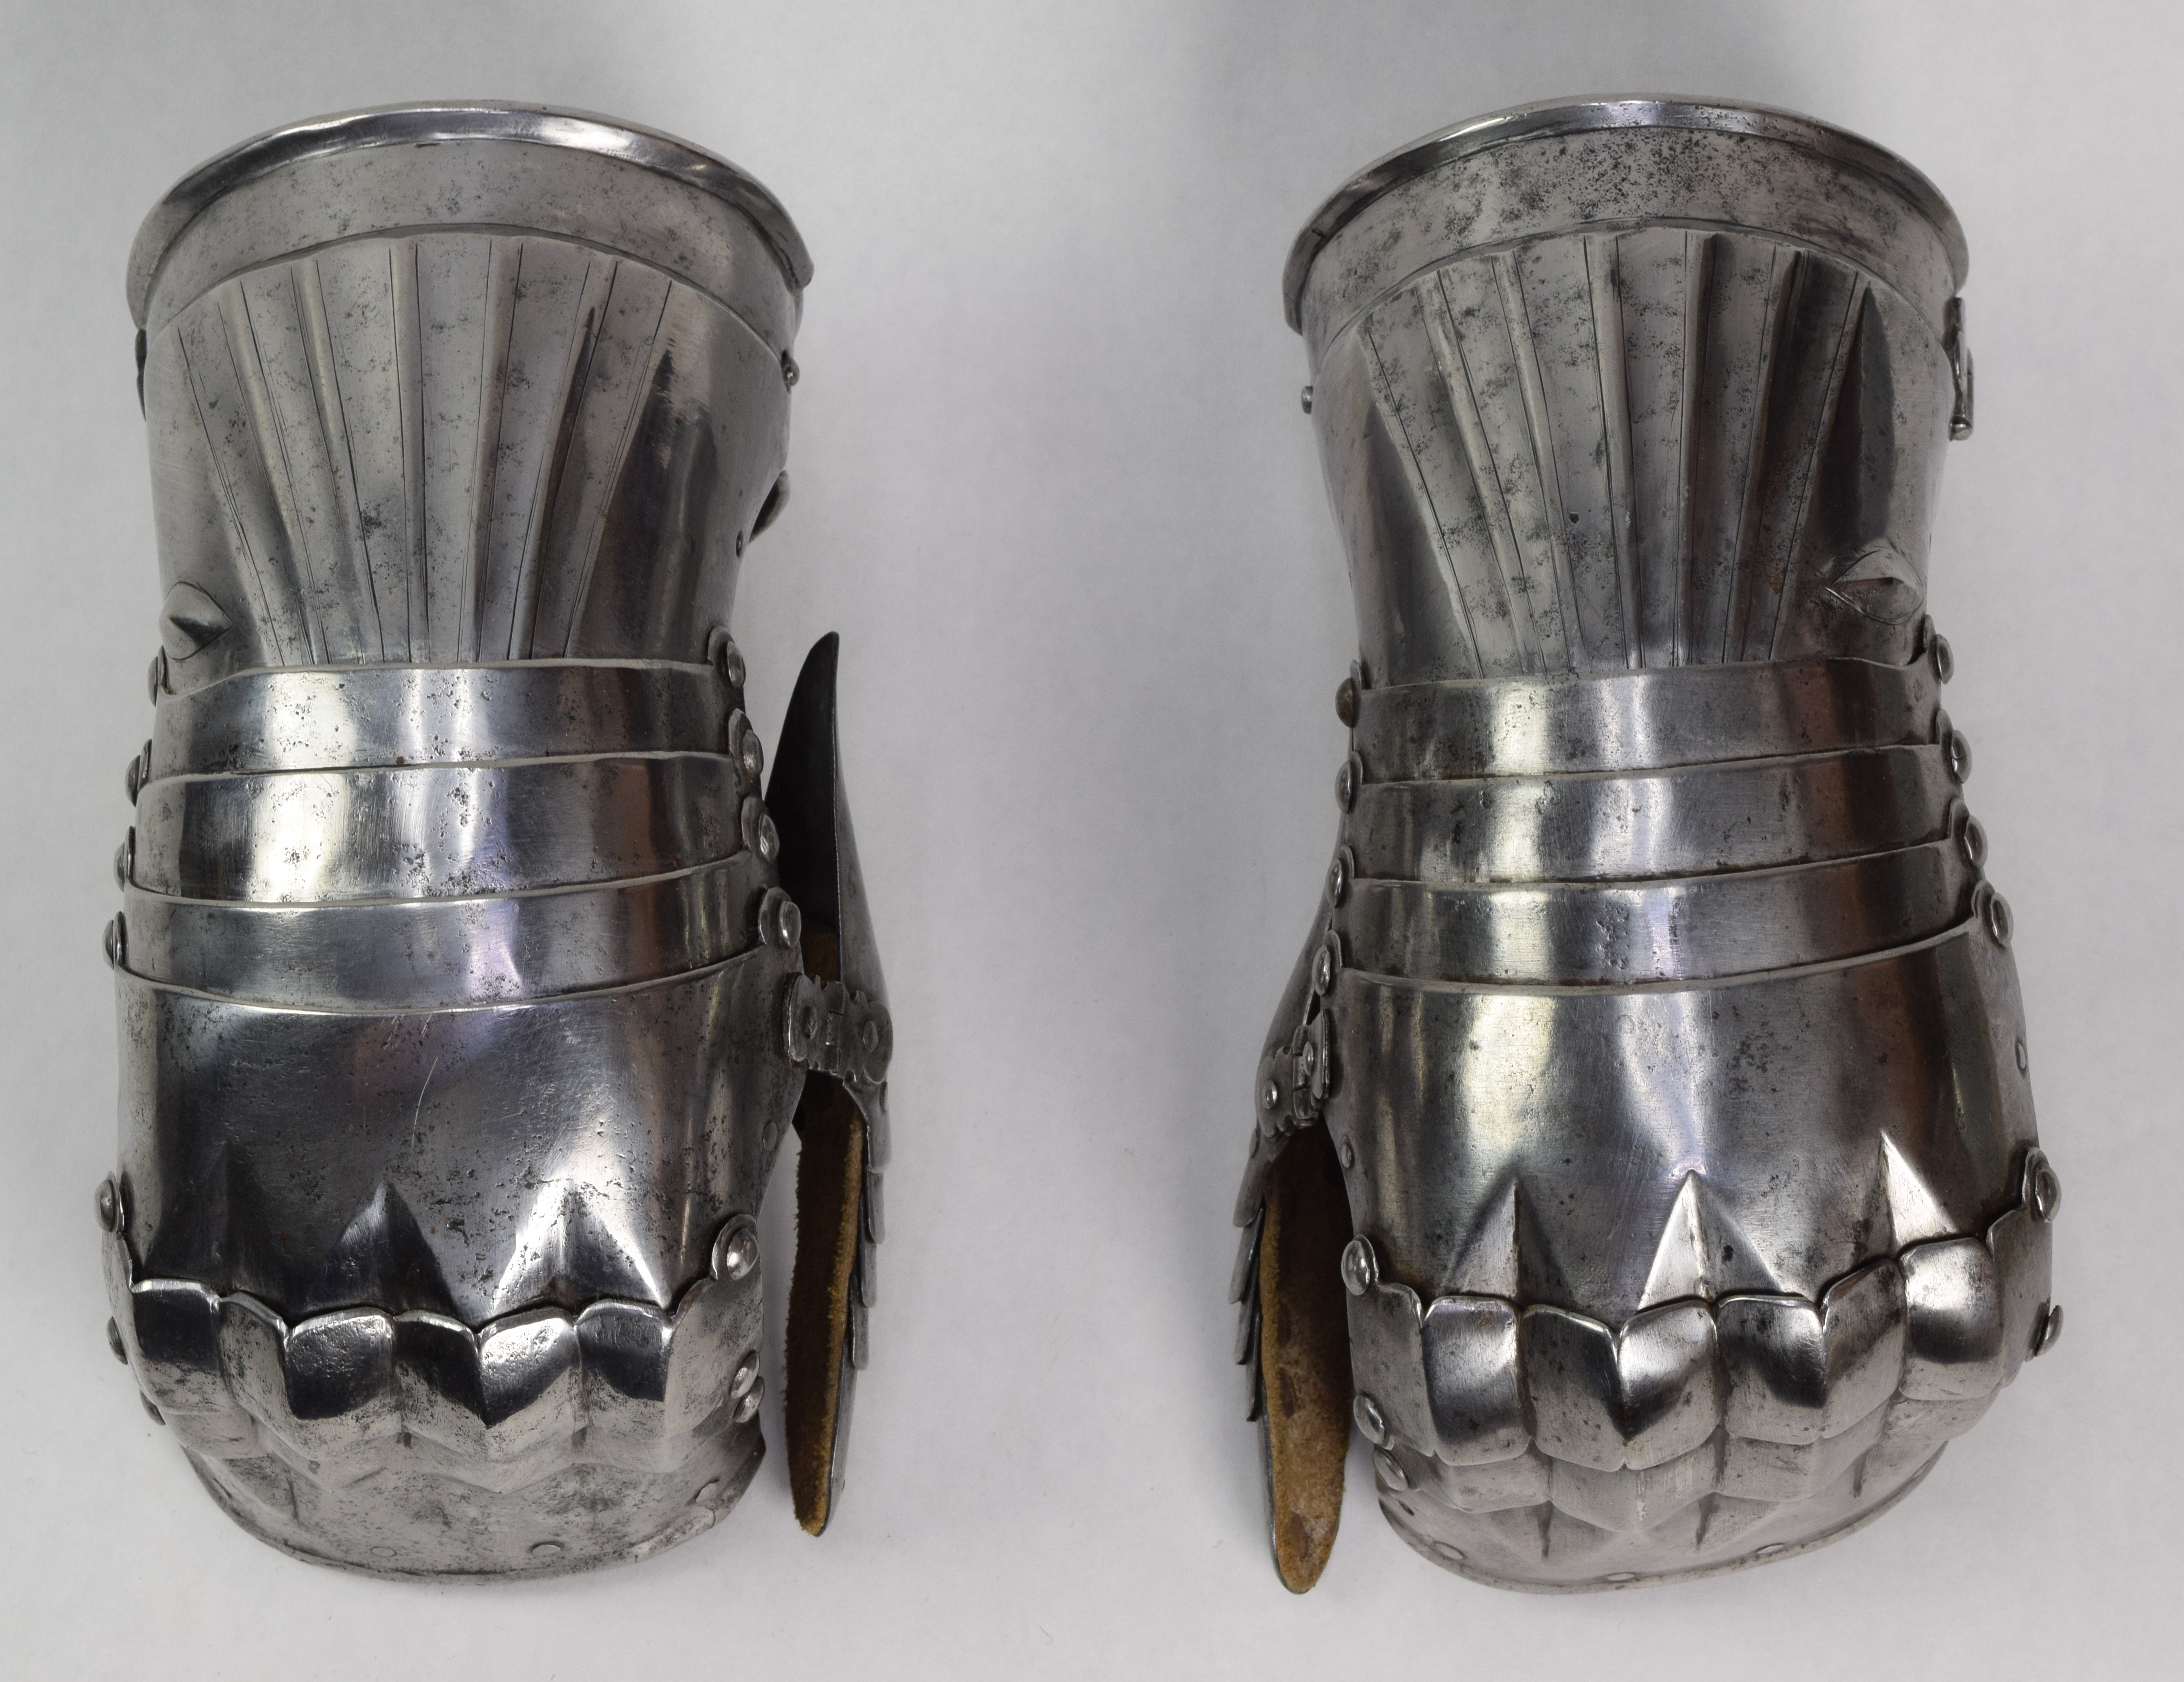 German Gauntlets - A-100-TopGrey